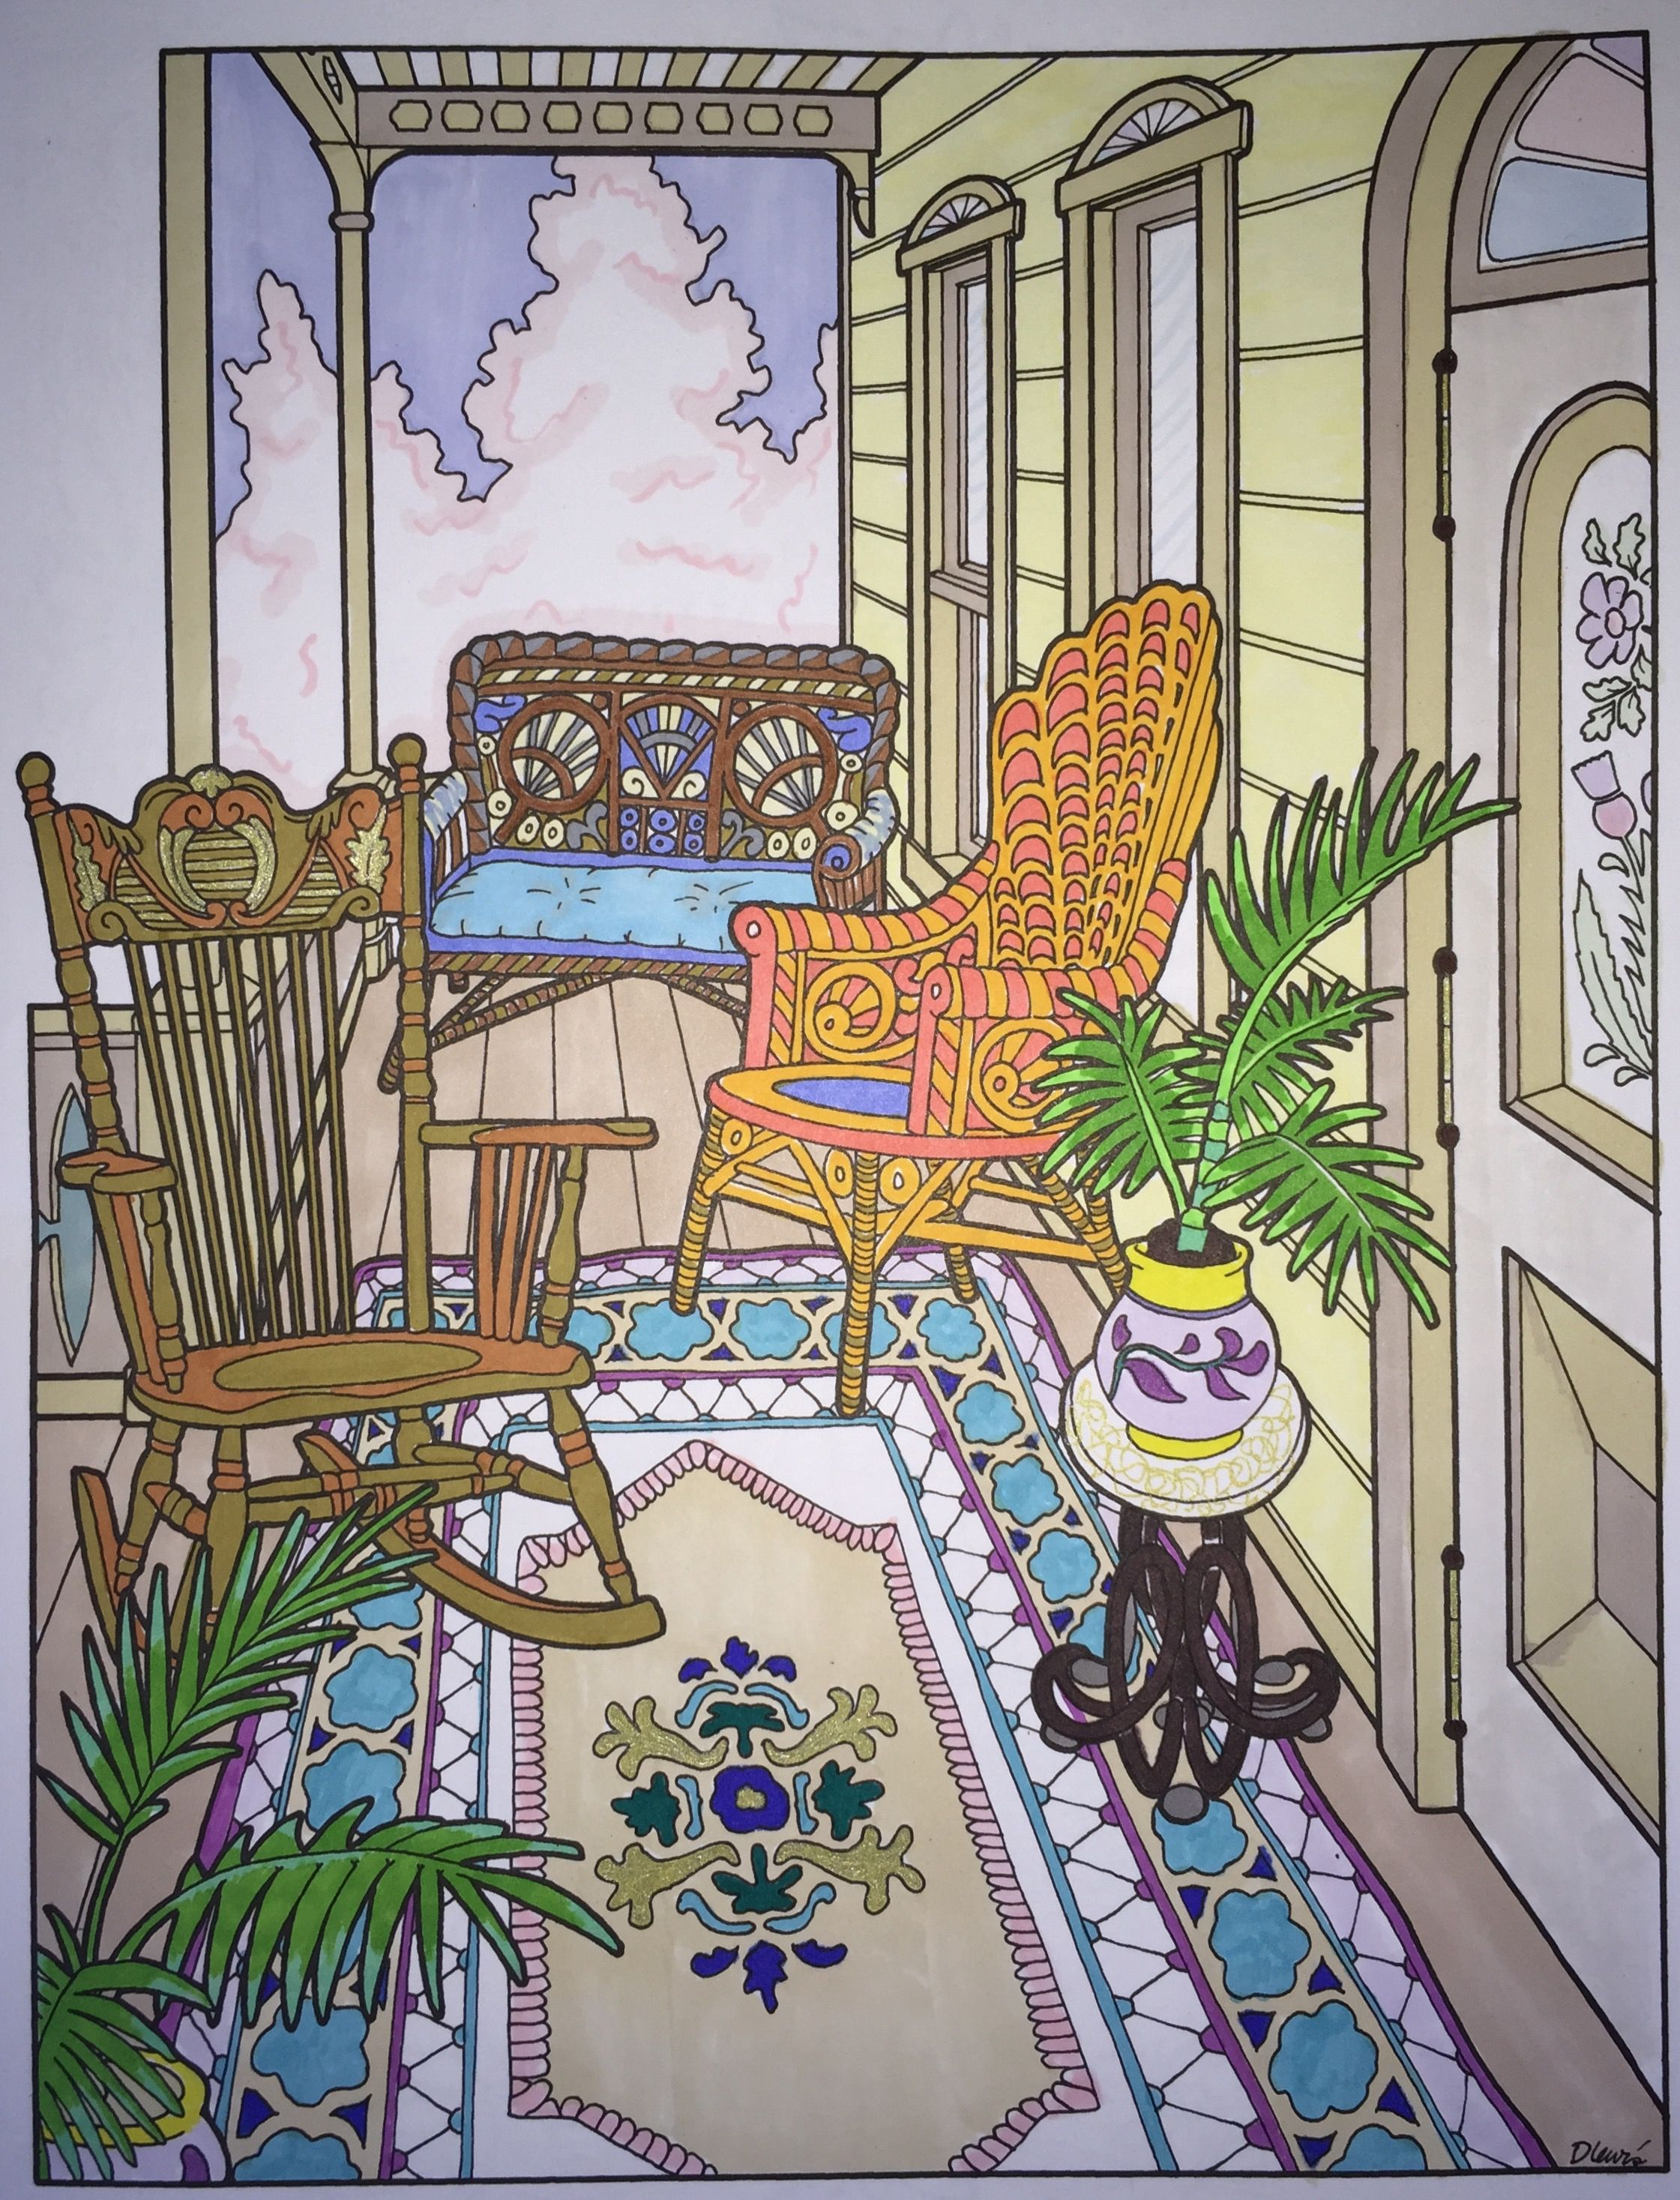 I Have This Book Victorian House Kkb Coloring Book By Dover Debbie Macomber Coloring Book Cat Coloring Book Coloring Books